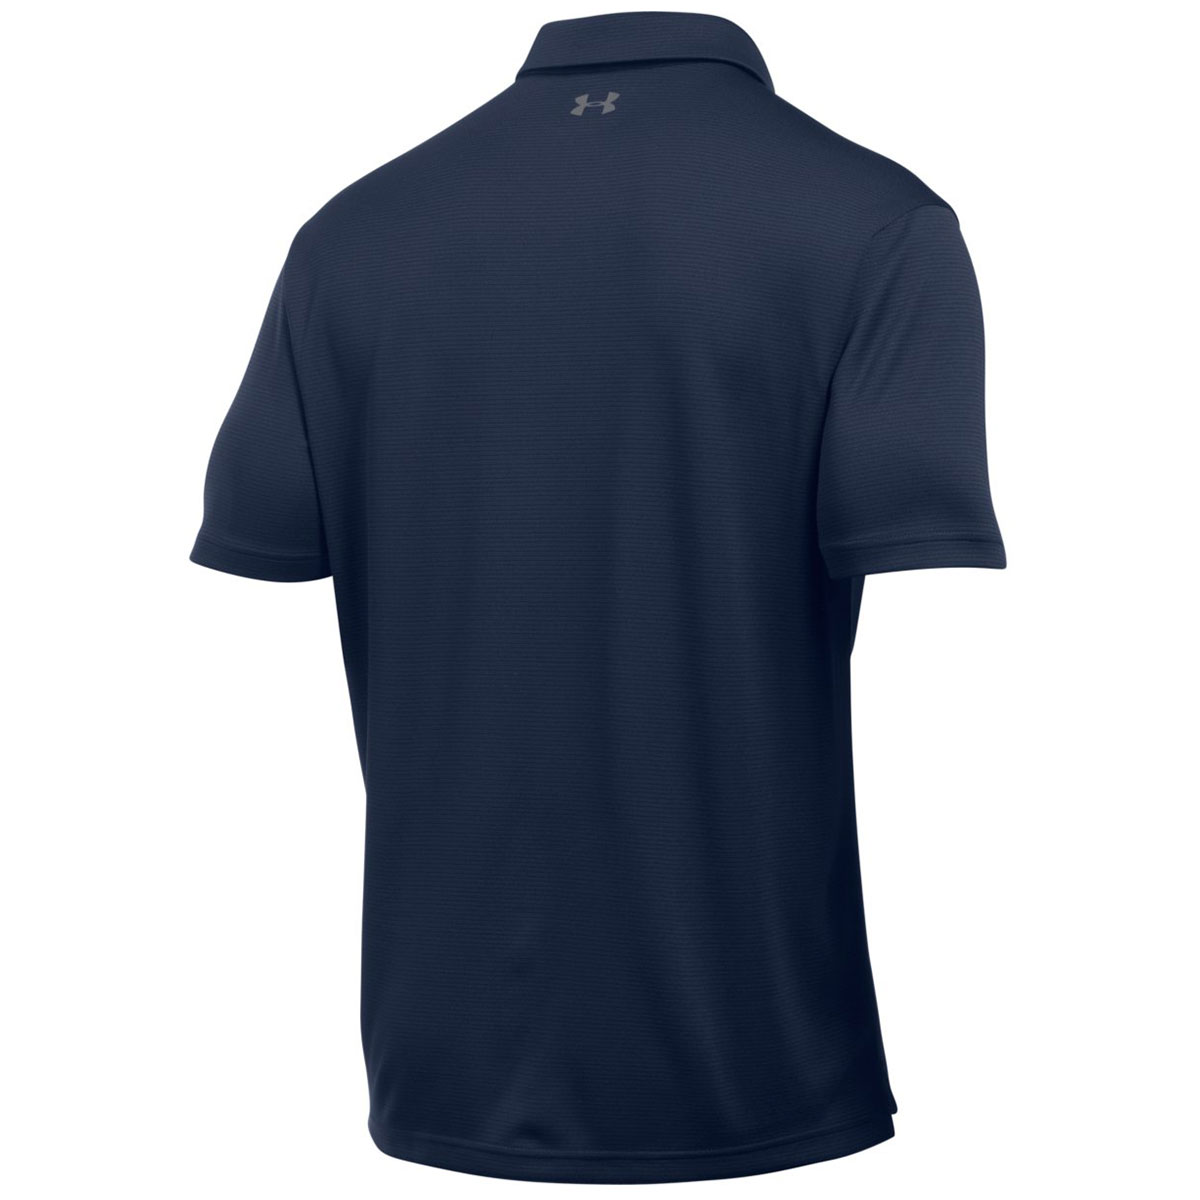 Under-Armour-Mens-Golf-Tech-Wicking-Textured-Soft-Light-Polo-Shirt thumbnail 55